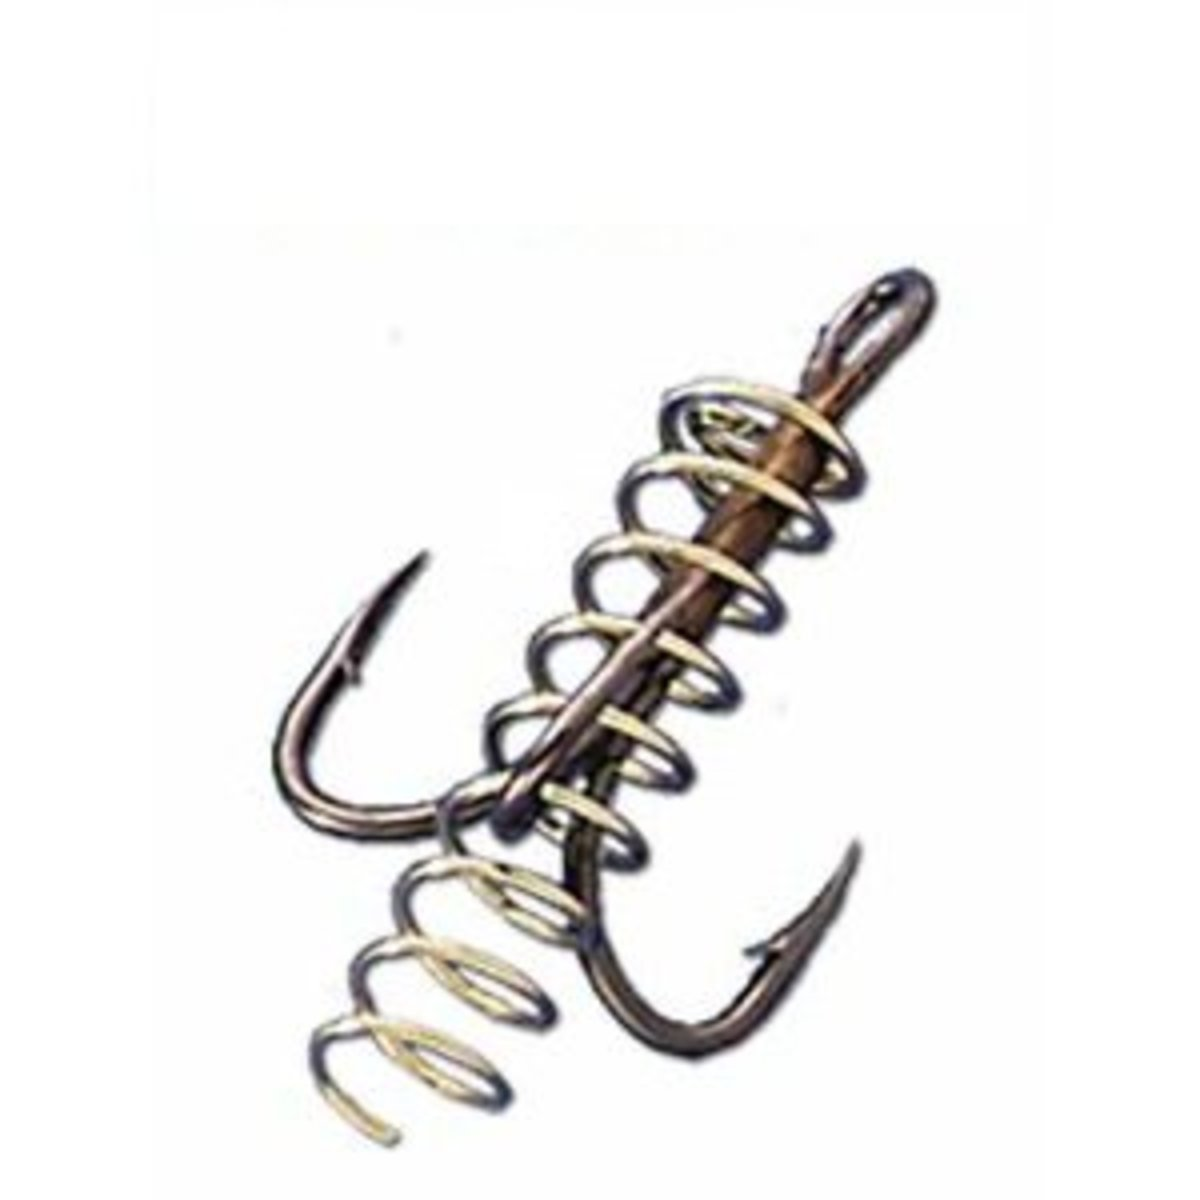 Spring treble hook: made to hold chicken liver or stink bait on the hook. This is the perfect hook to catch catfish with.